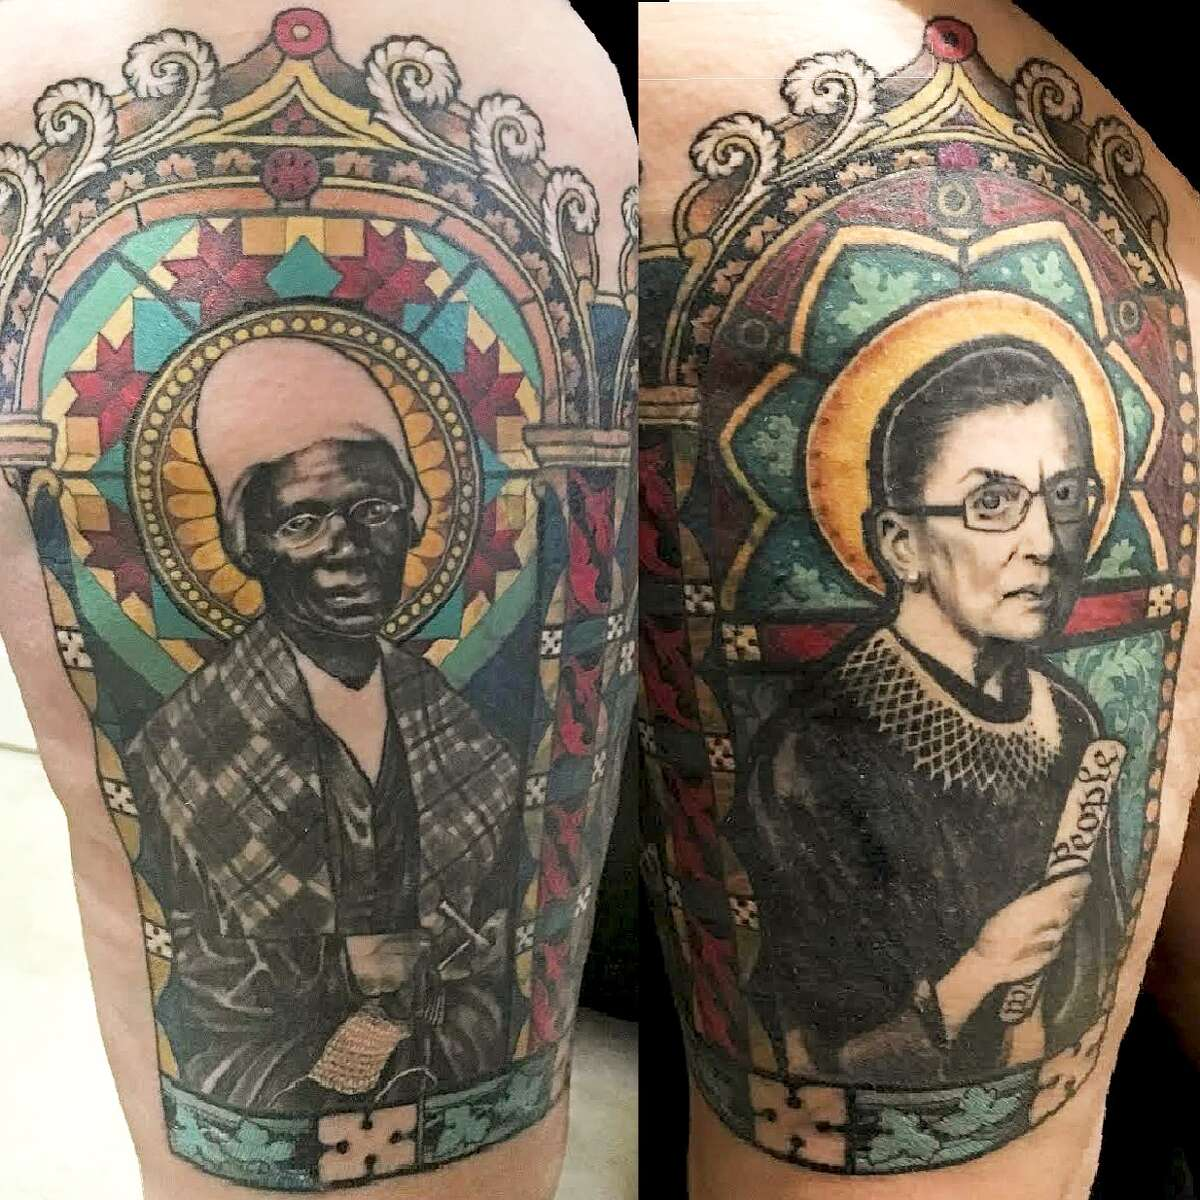 Portraits in tribute to Sojourner Truth and Ruth Bader Ginsburg were recently tattooed on Tanya Wischerath's clients.